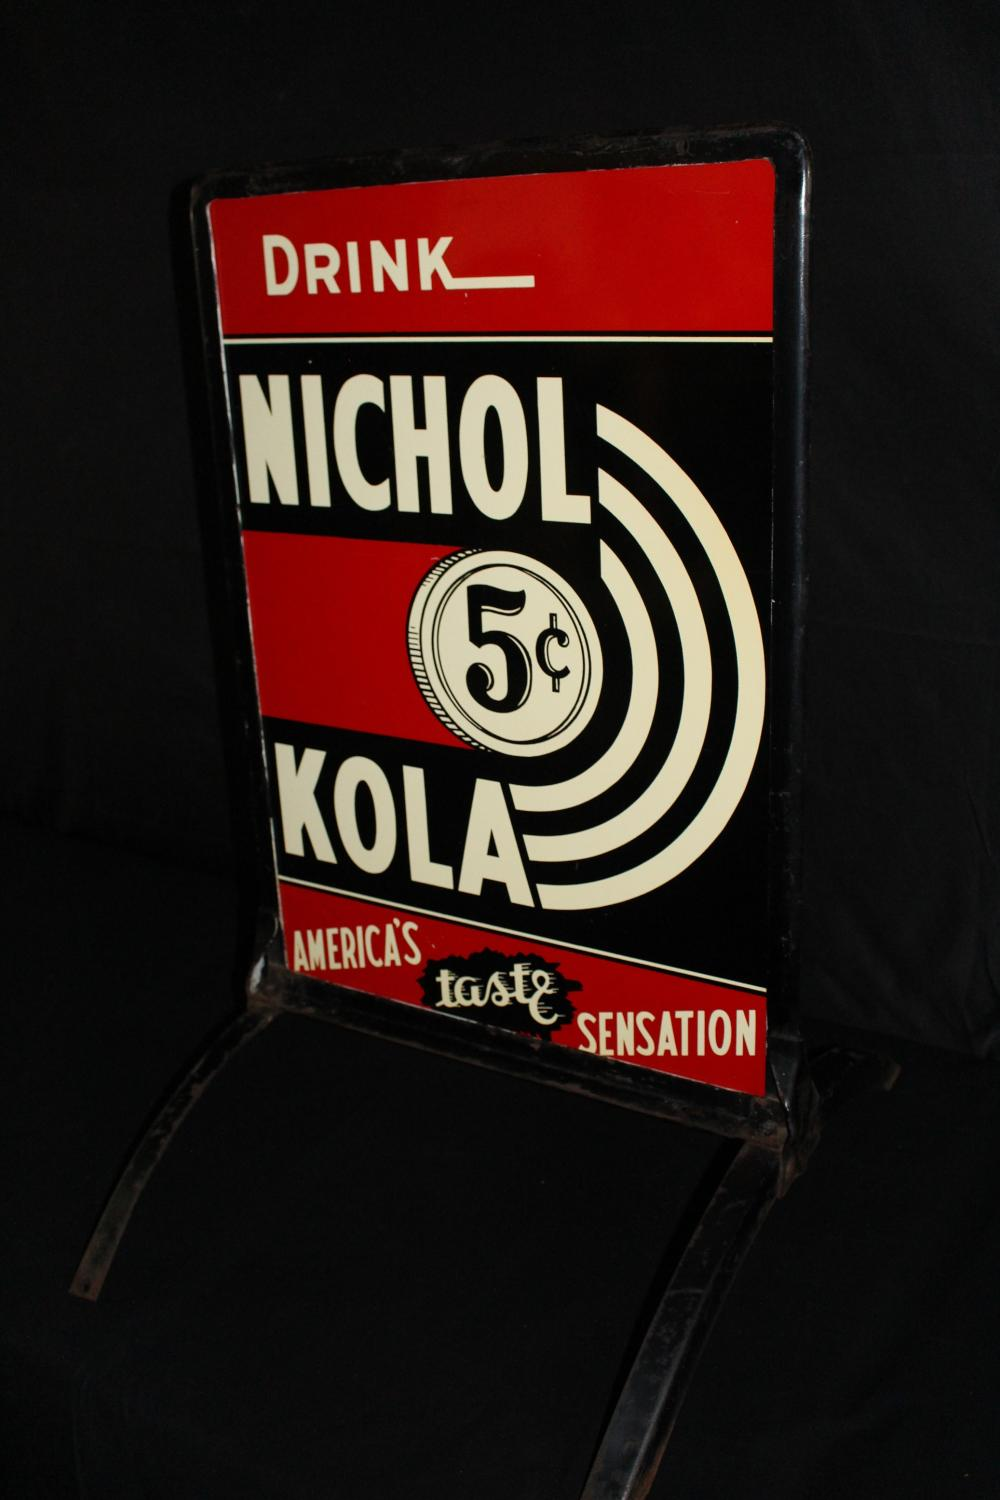 DRINK 5 CENT NICHOL COLA SODA POP CURB SIGN